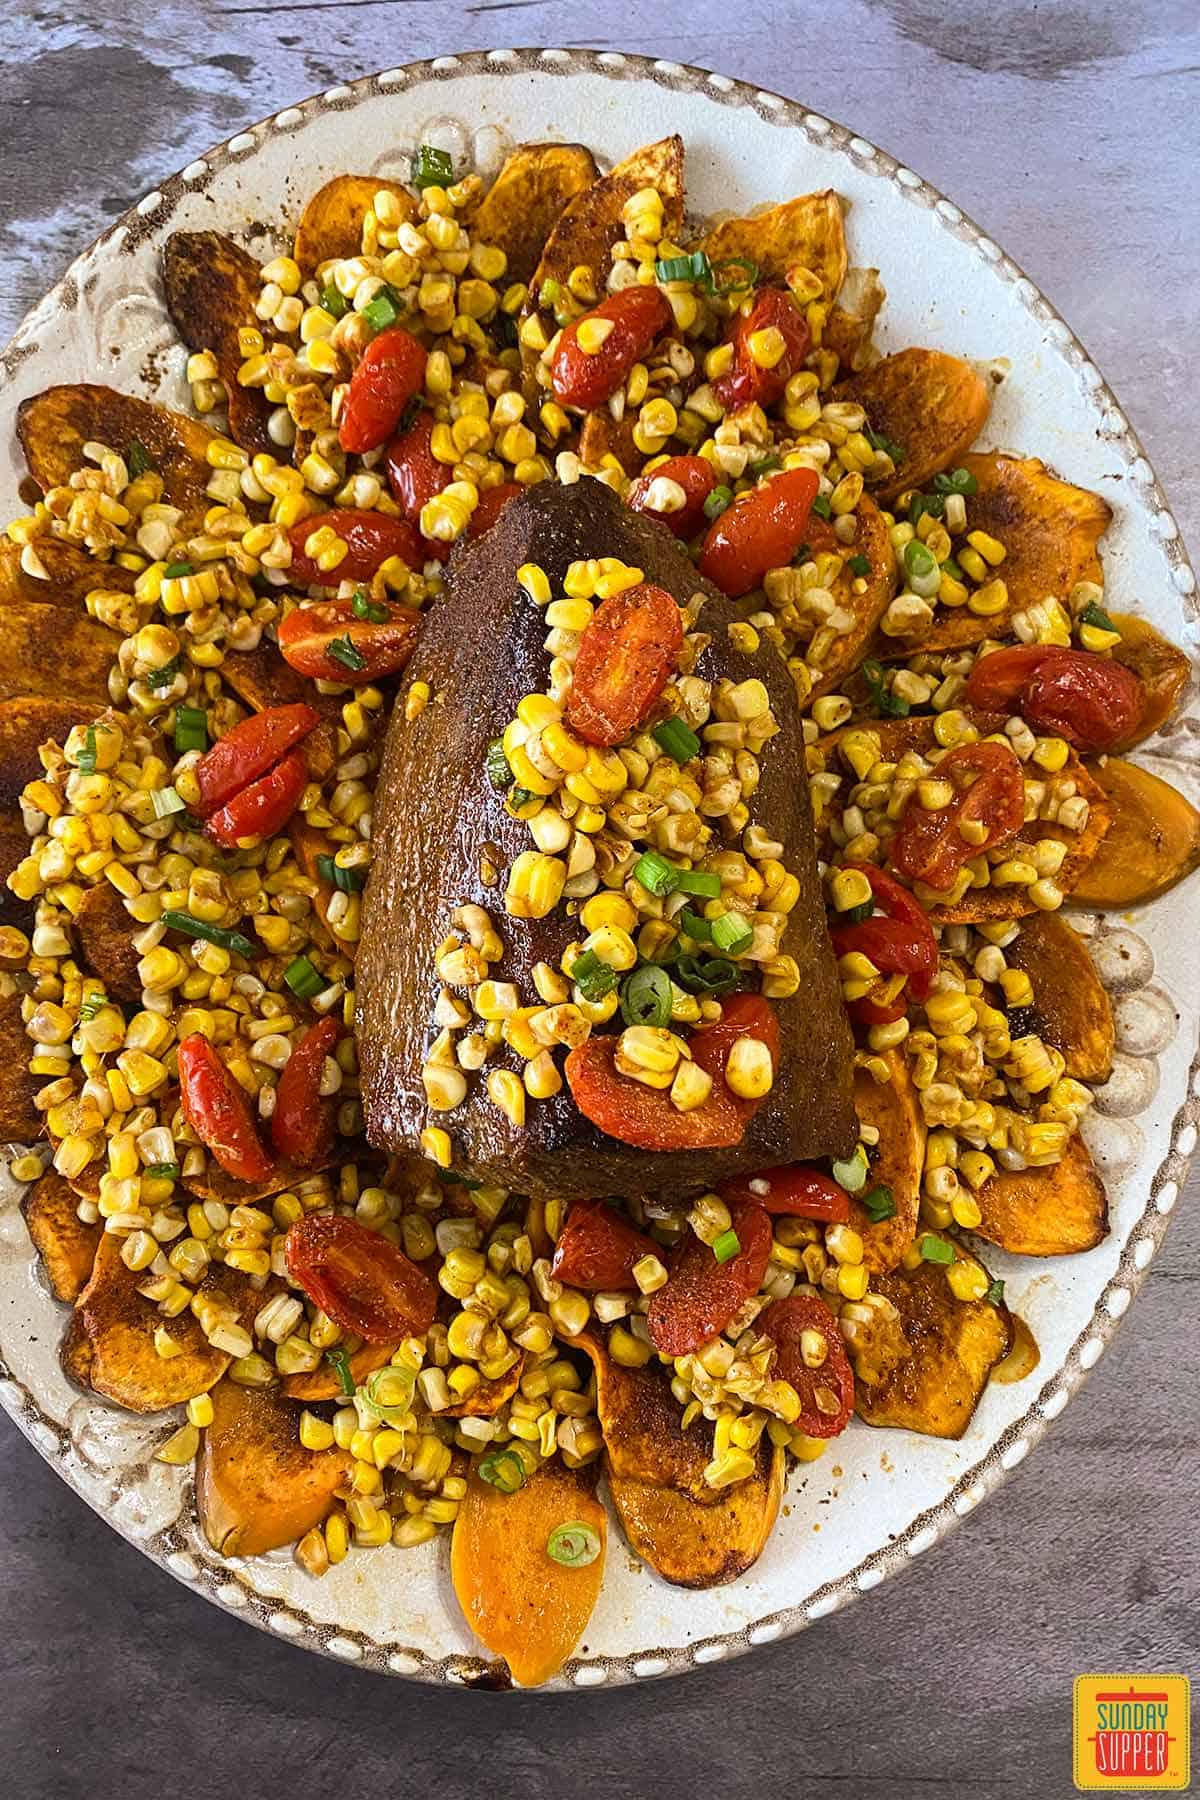 Overhead view of eye of round roast on a bed of sweet potatoes, corn, and tomatoes